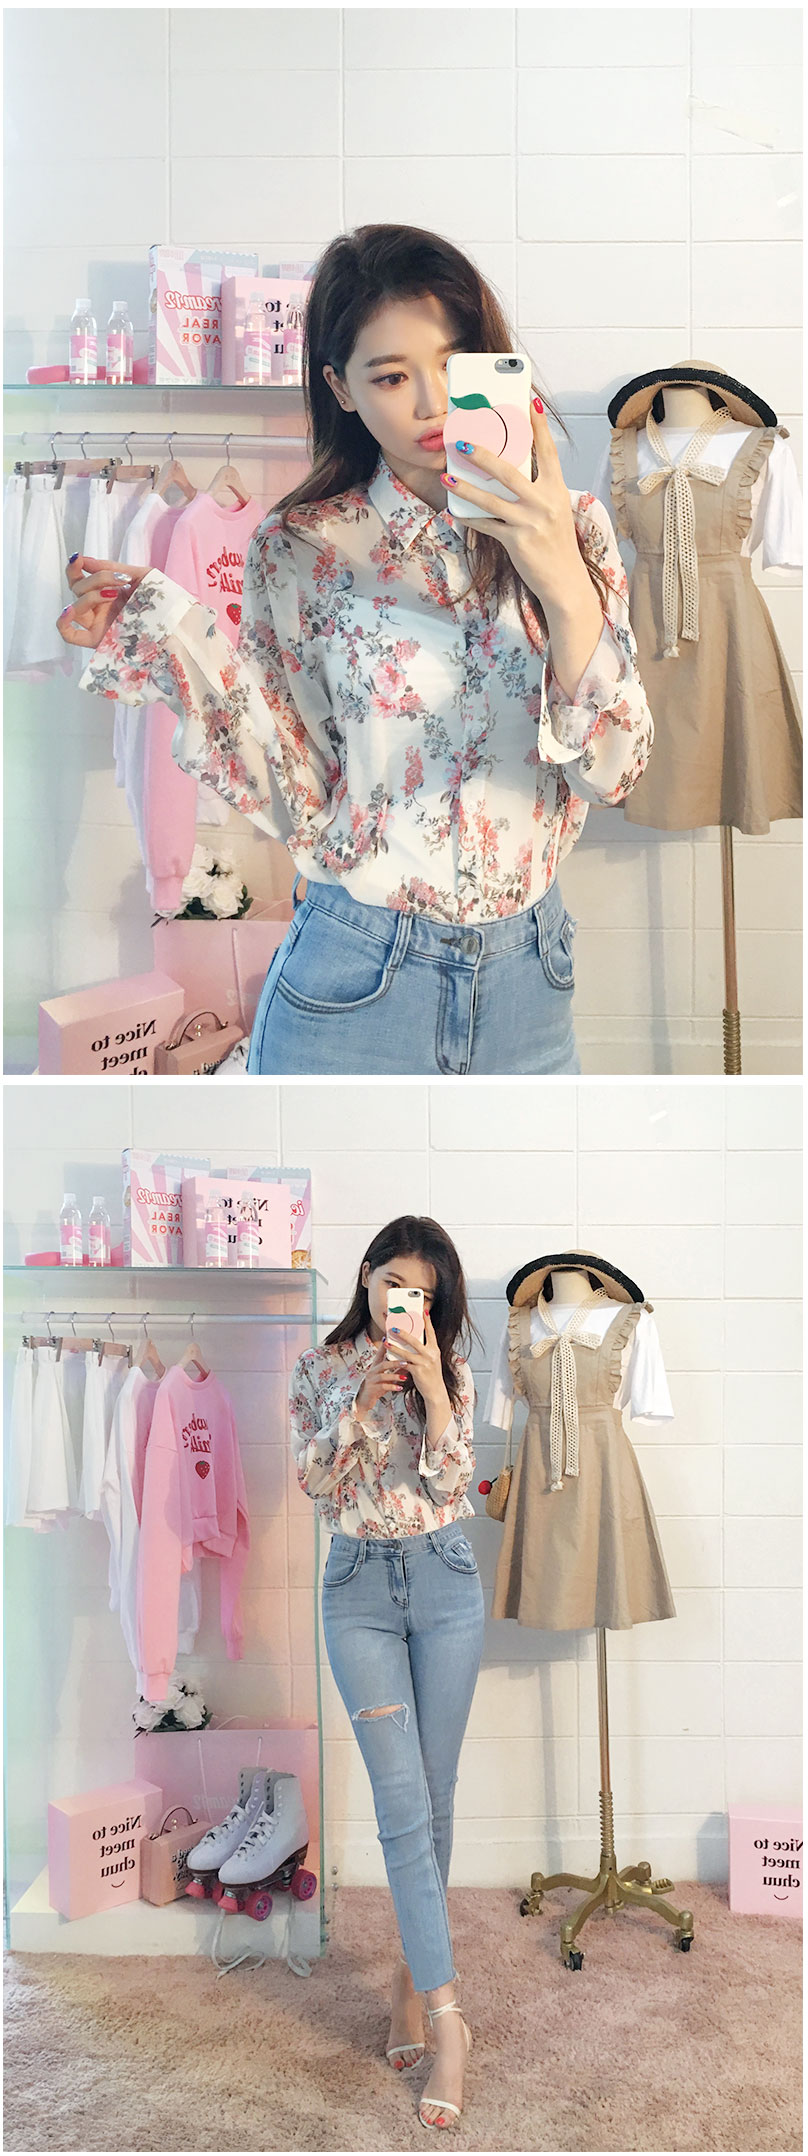 //cdn.nhanh.vn/cdn/store/29770/psCT/20181010/9452006/CHUU_By_My_Side_Flower_Blouse_(37).jpg